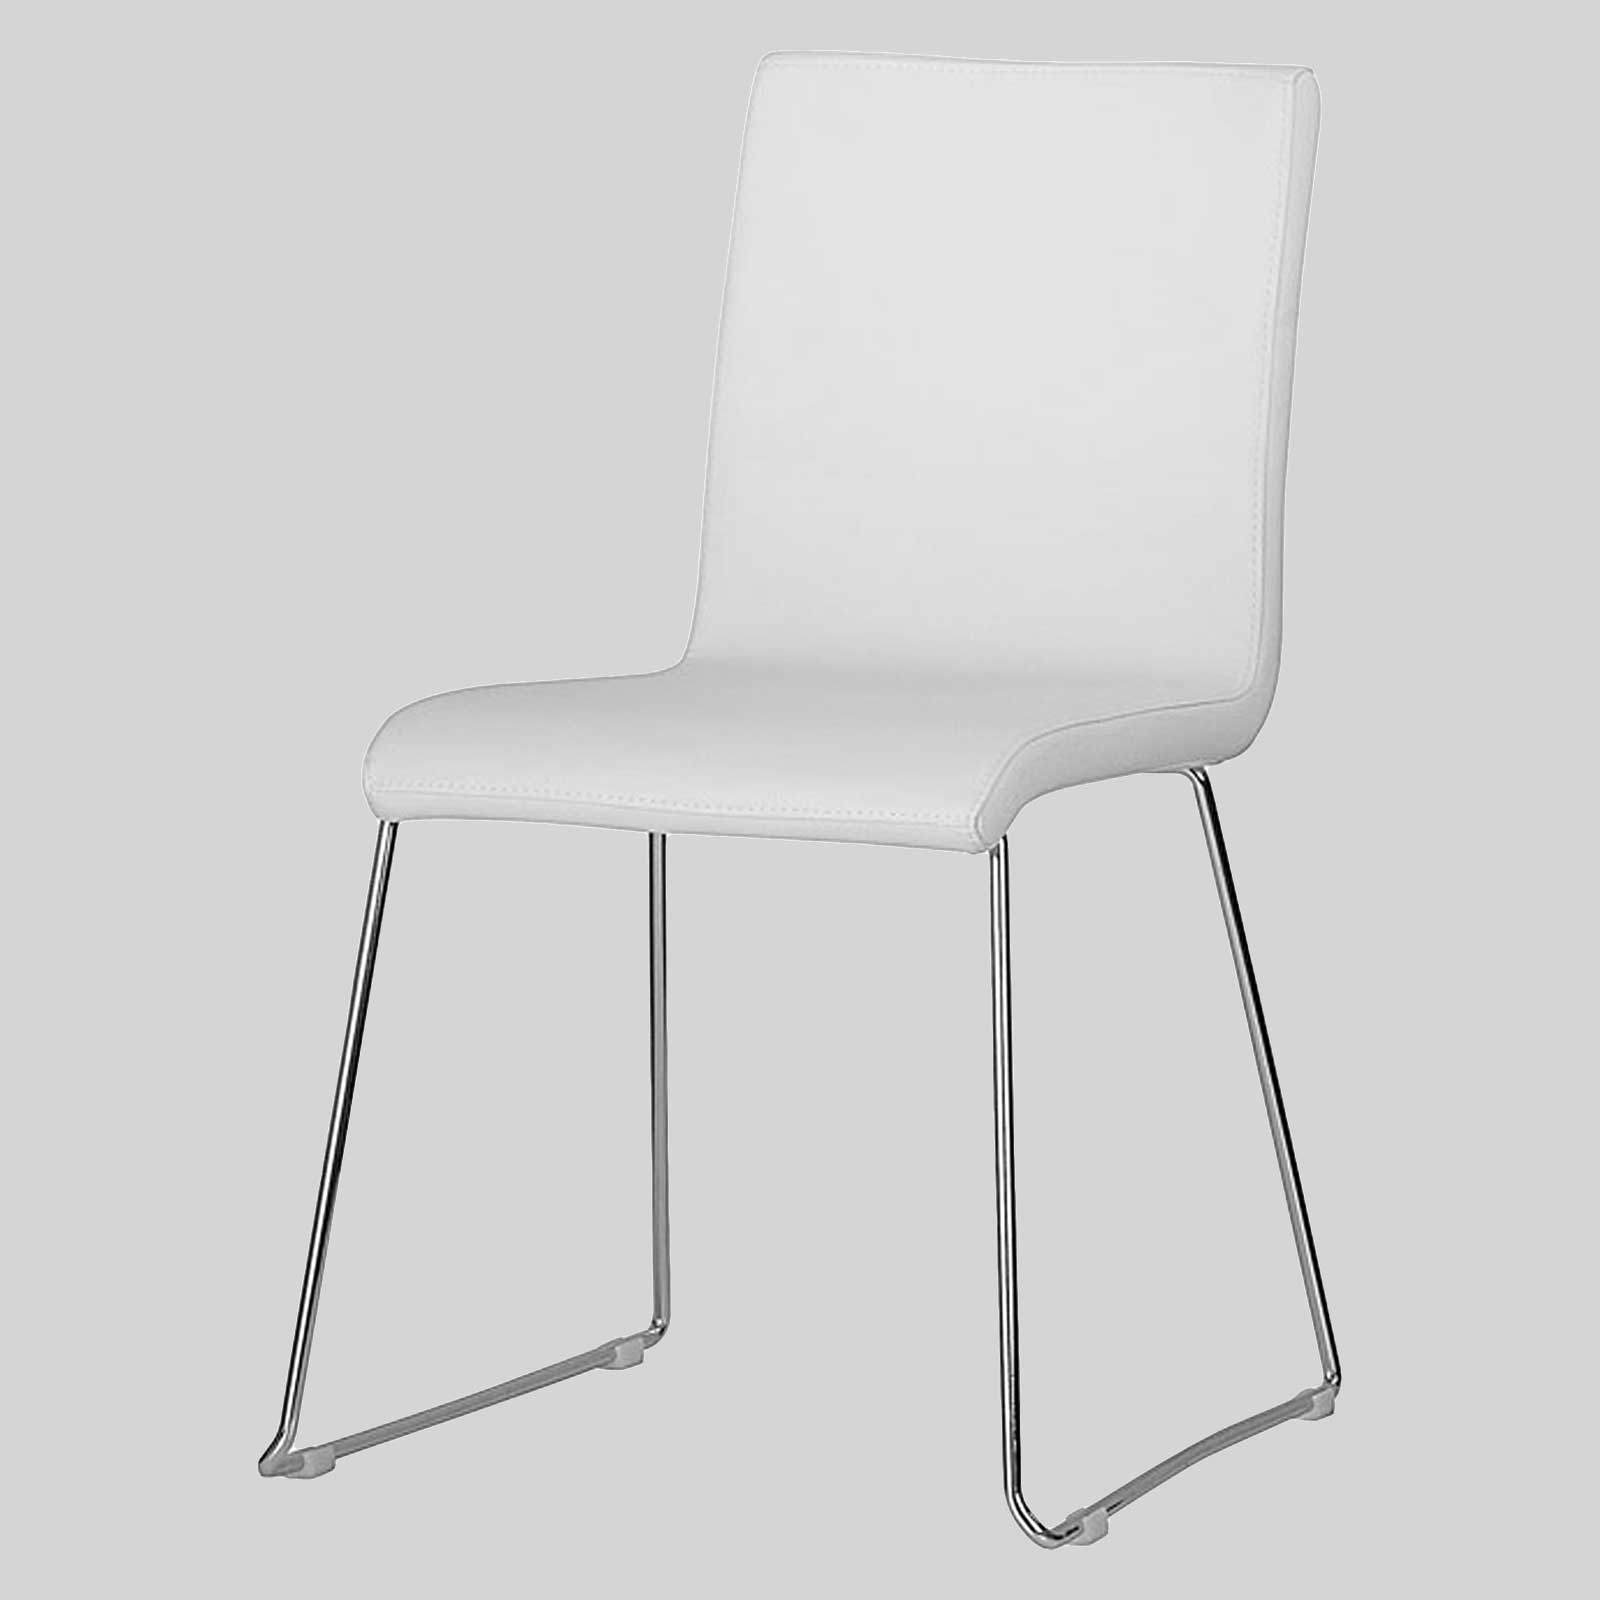 Sofia Chair Upholstered Chairs For Hospitality Sofia Concept